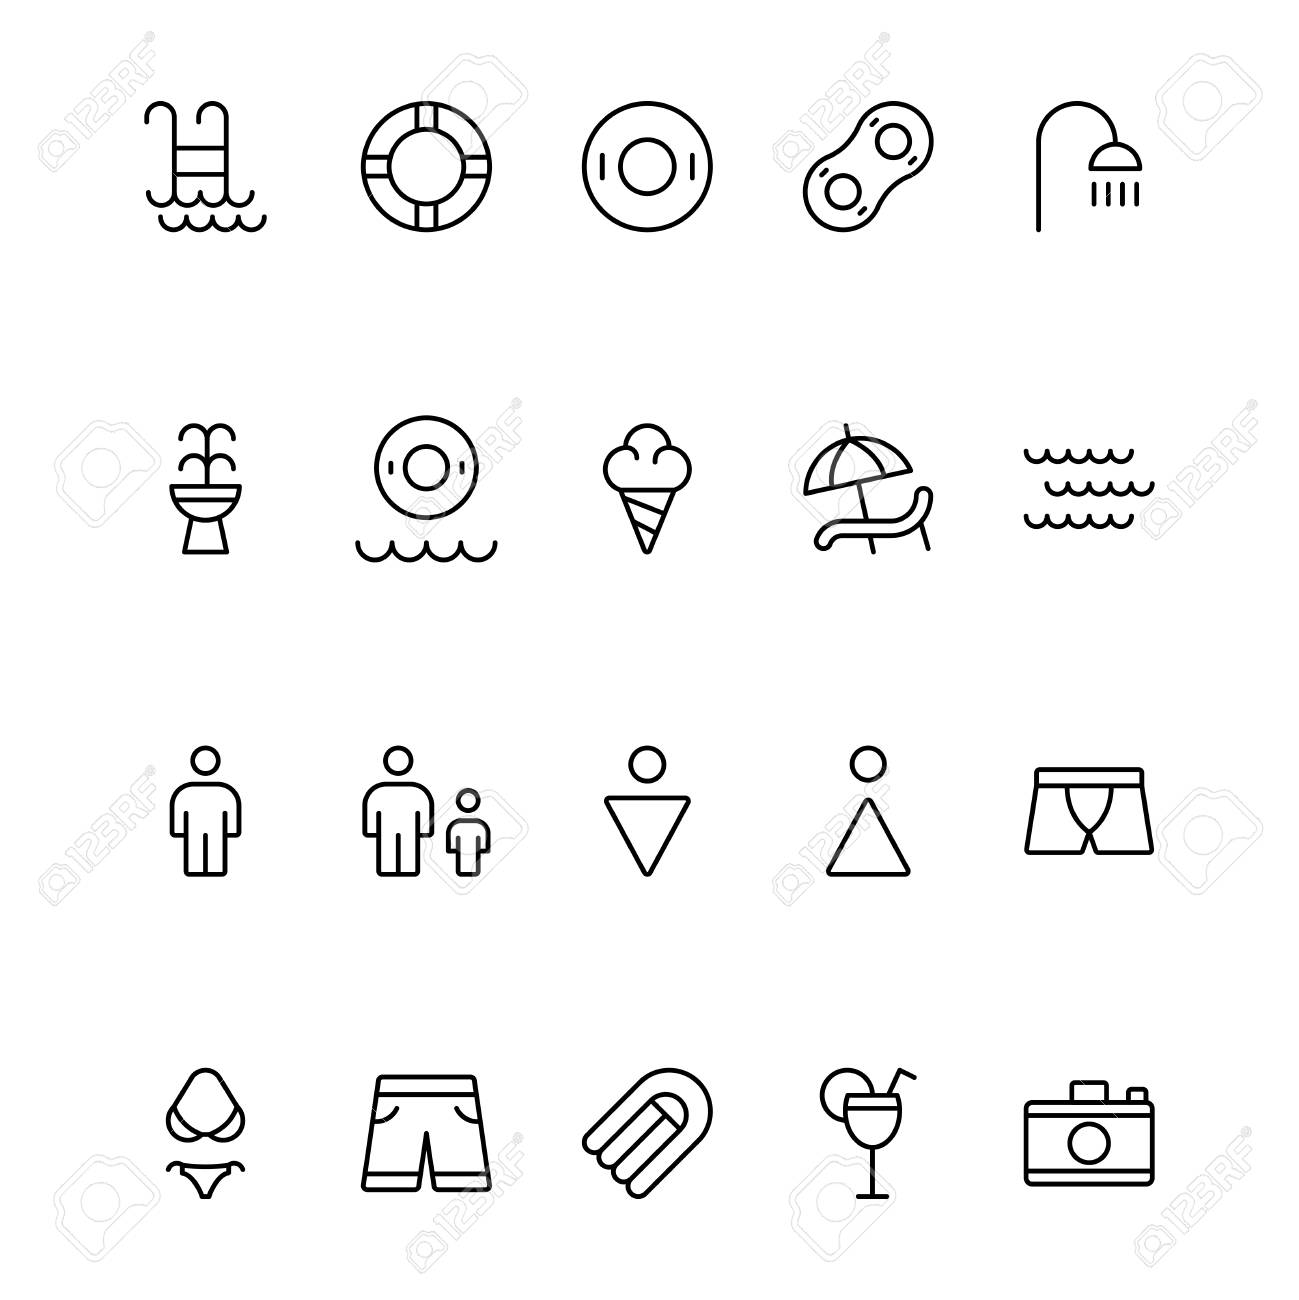 Collection Of High Quality Outline Holiday Pictograms In Modern Flat Style